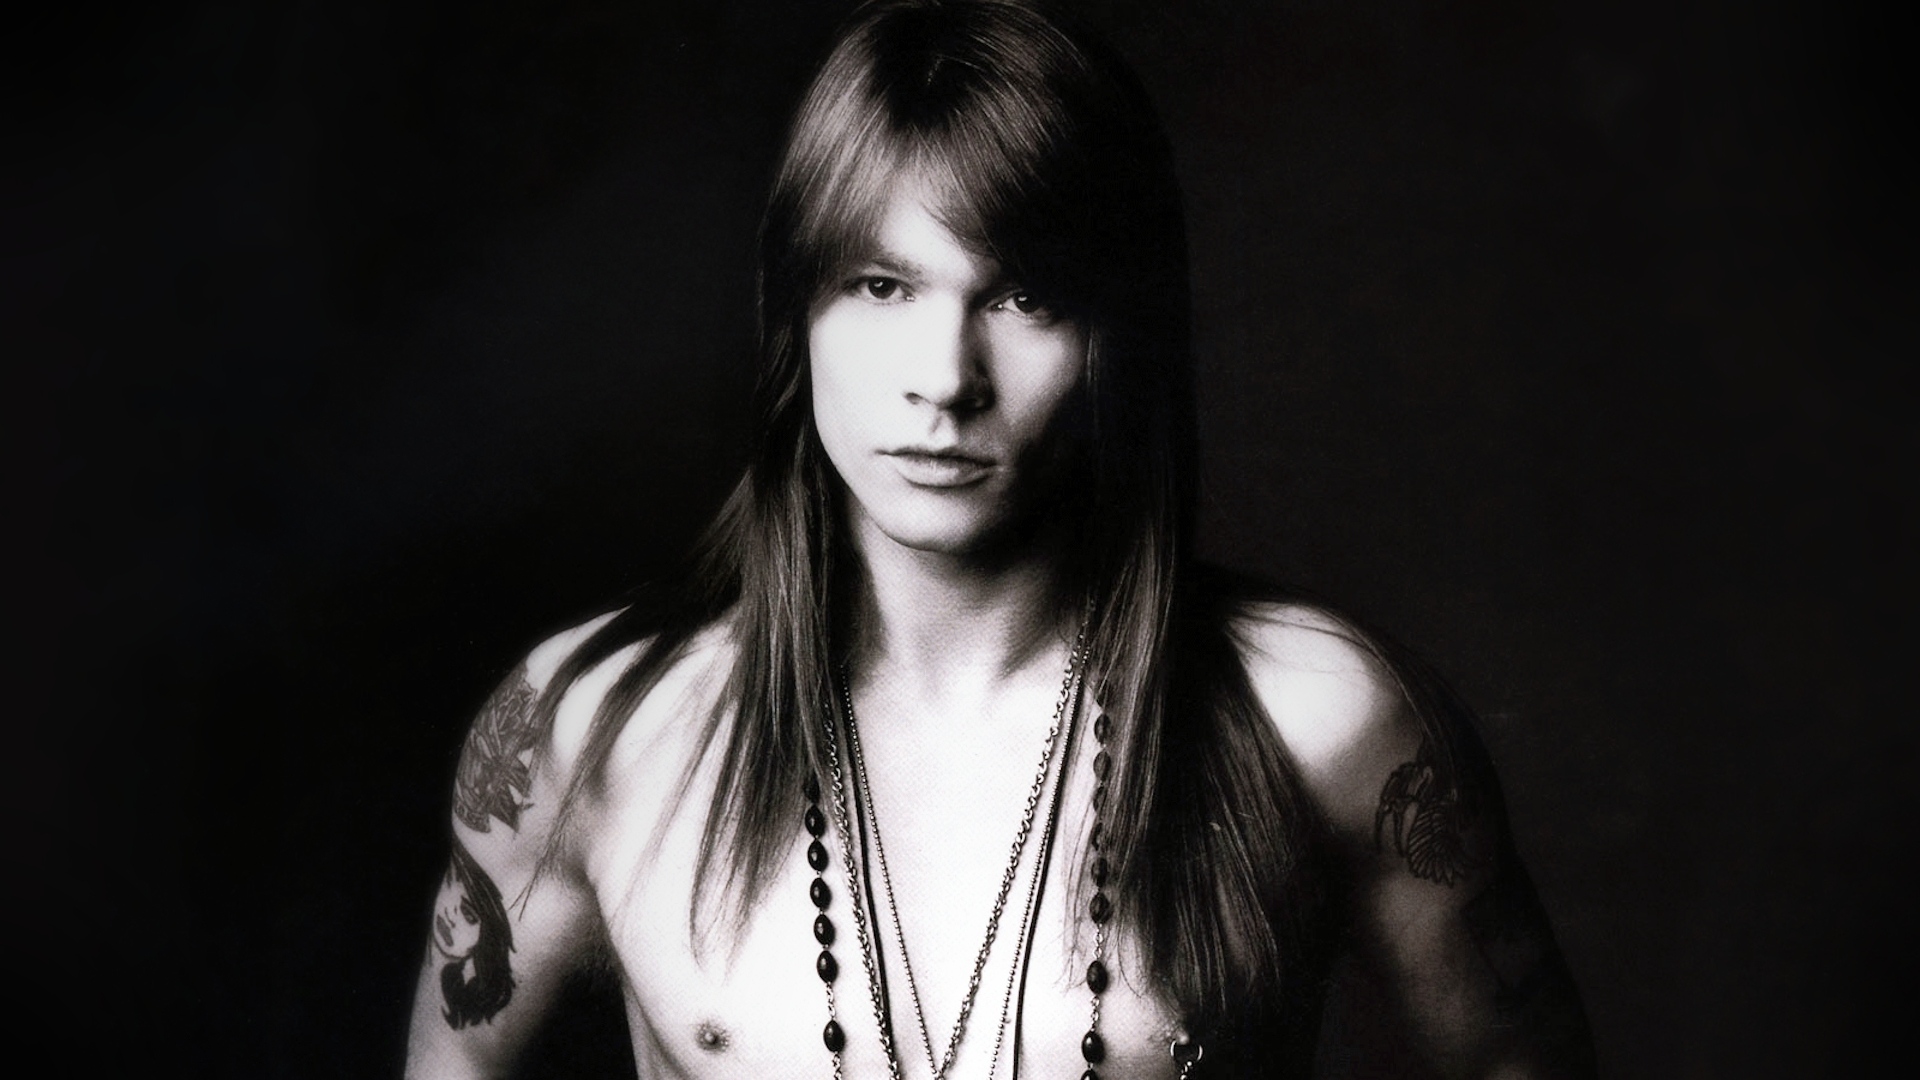 axl rose wallpaper - photo #21